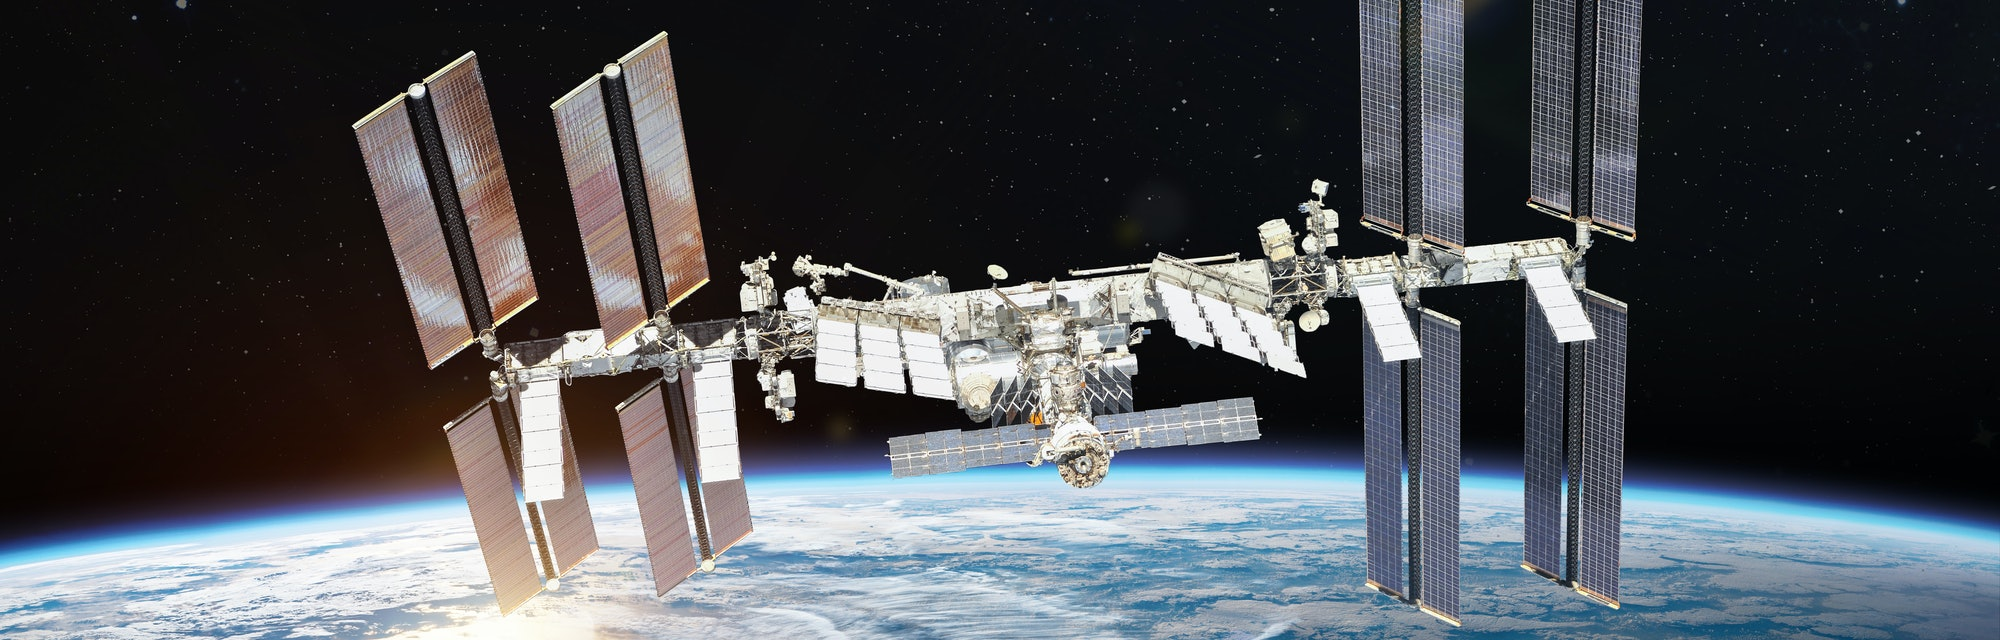 International space station on orbit of Earth planet. ISS. Dark background. Sun reflection. Elements of this image furnished by NASA